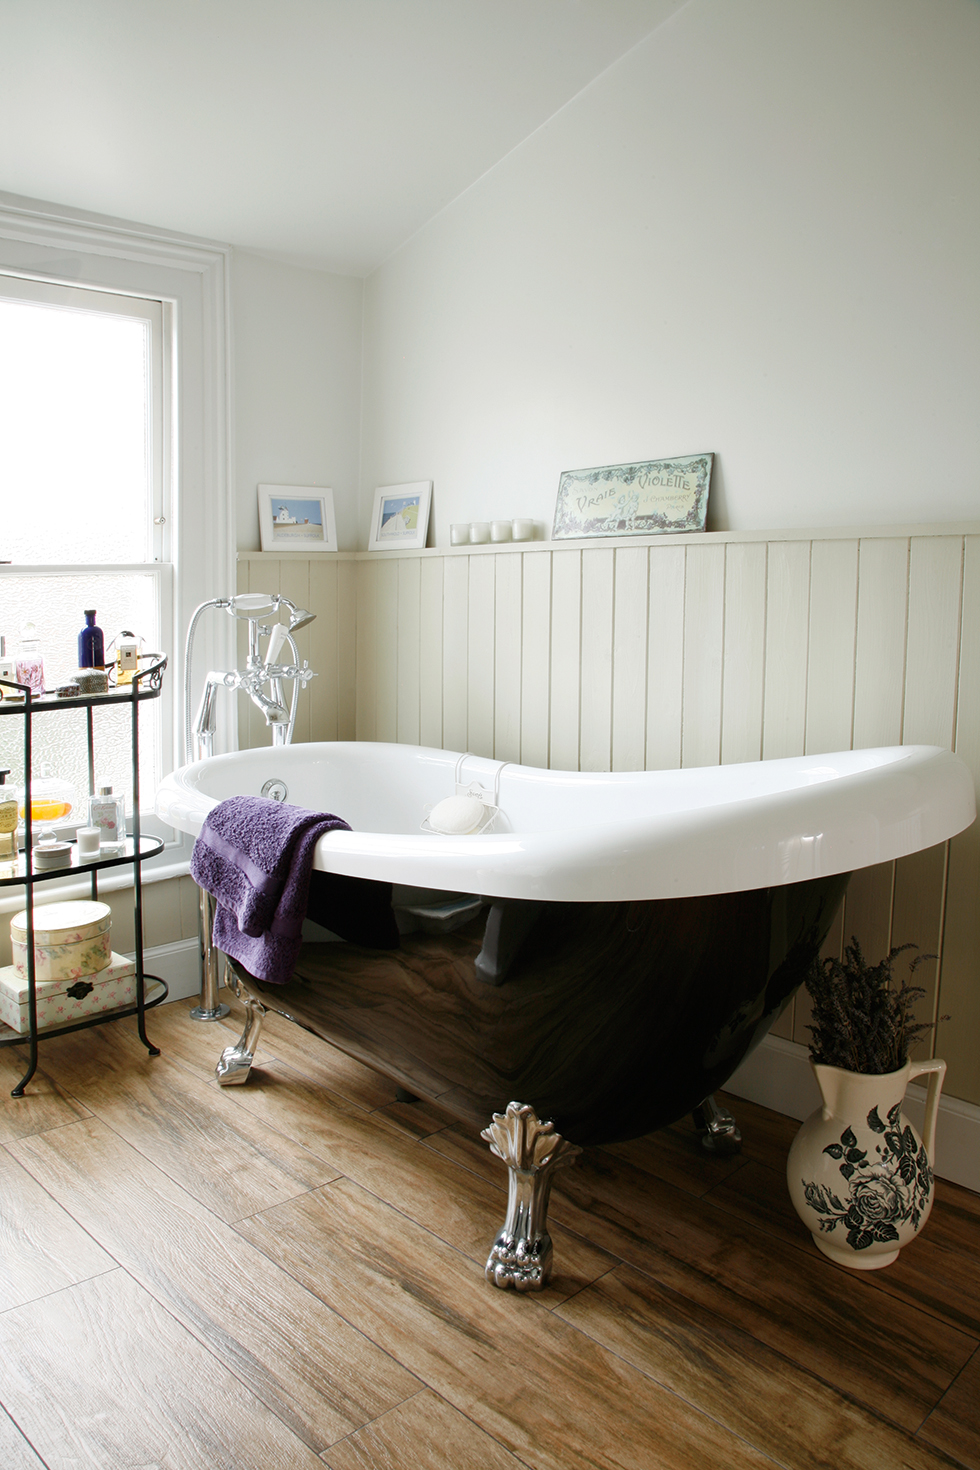 Roll-top bath from Bath Empire, with fixtures and fittings from Victorian Plumbing